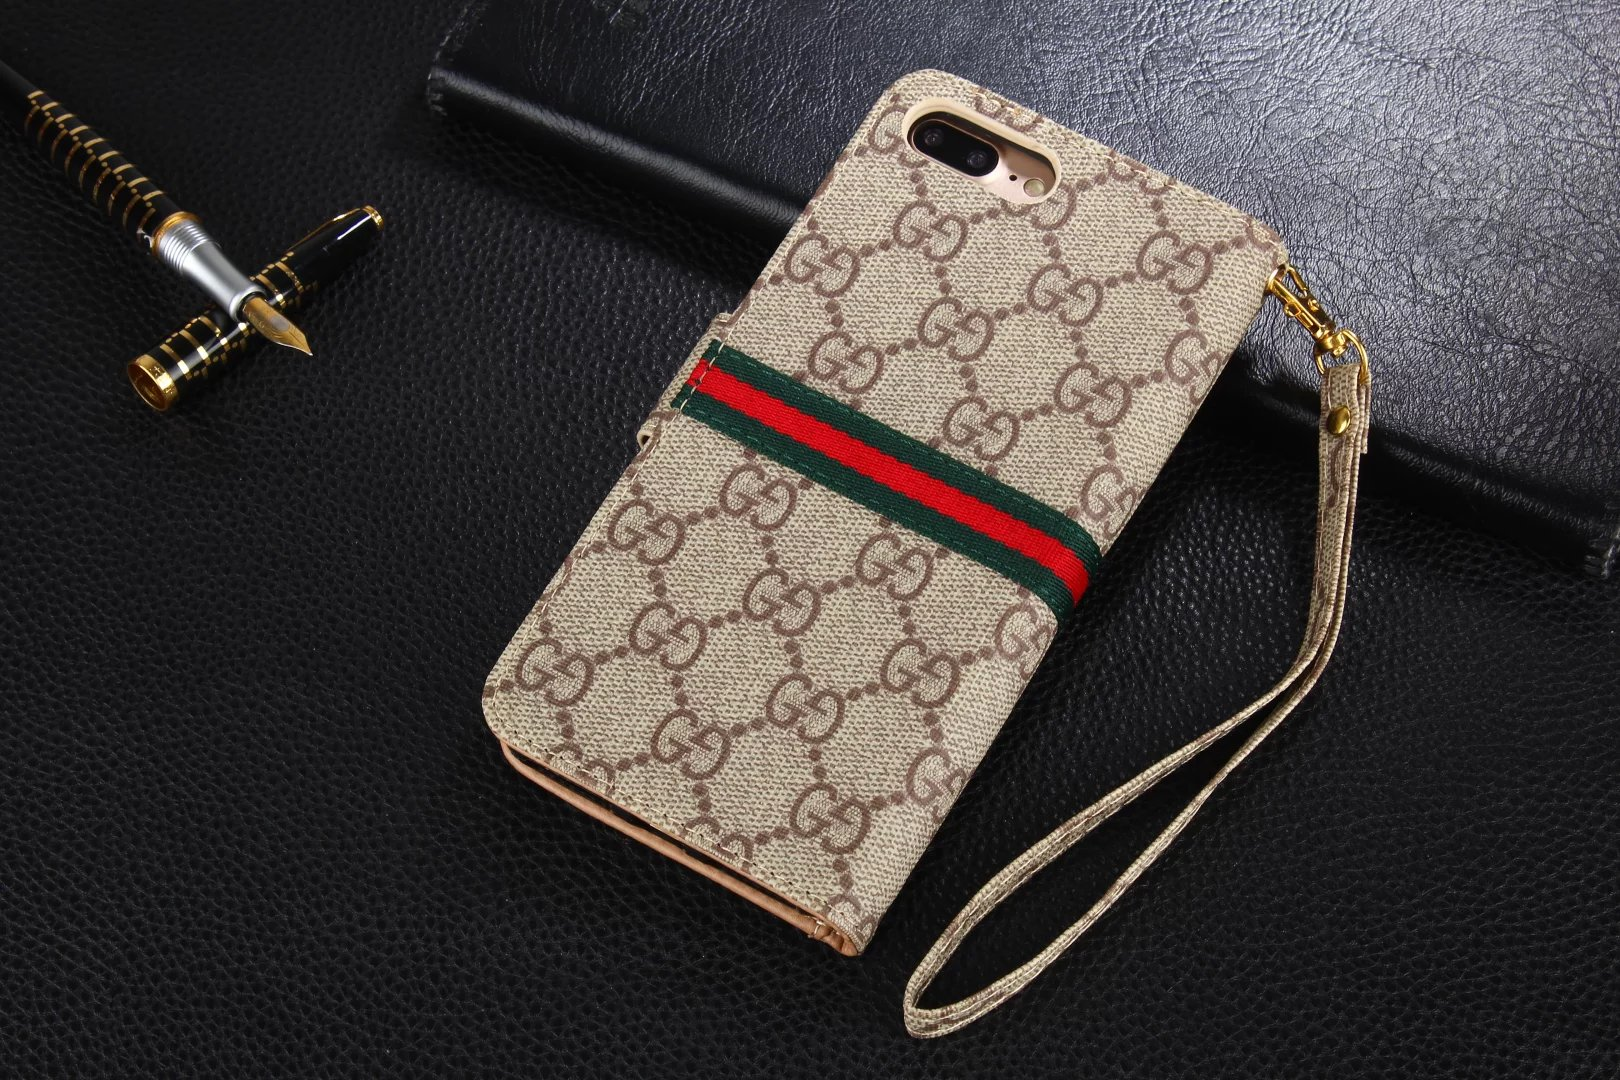 apple covers for iphone 8 iphone 8 cases stores Gucci iphone 8 case designer iphone 8 covers iphone 8 cases stores iphone 8 juice pack iphone 8 case buy case of cellphone case iphone